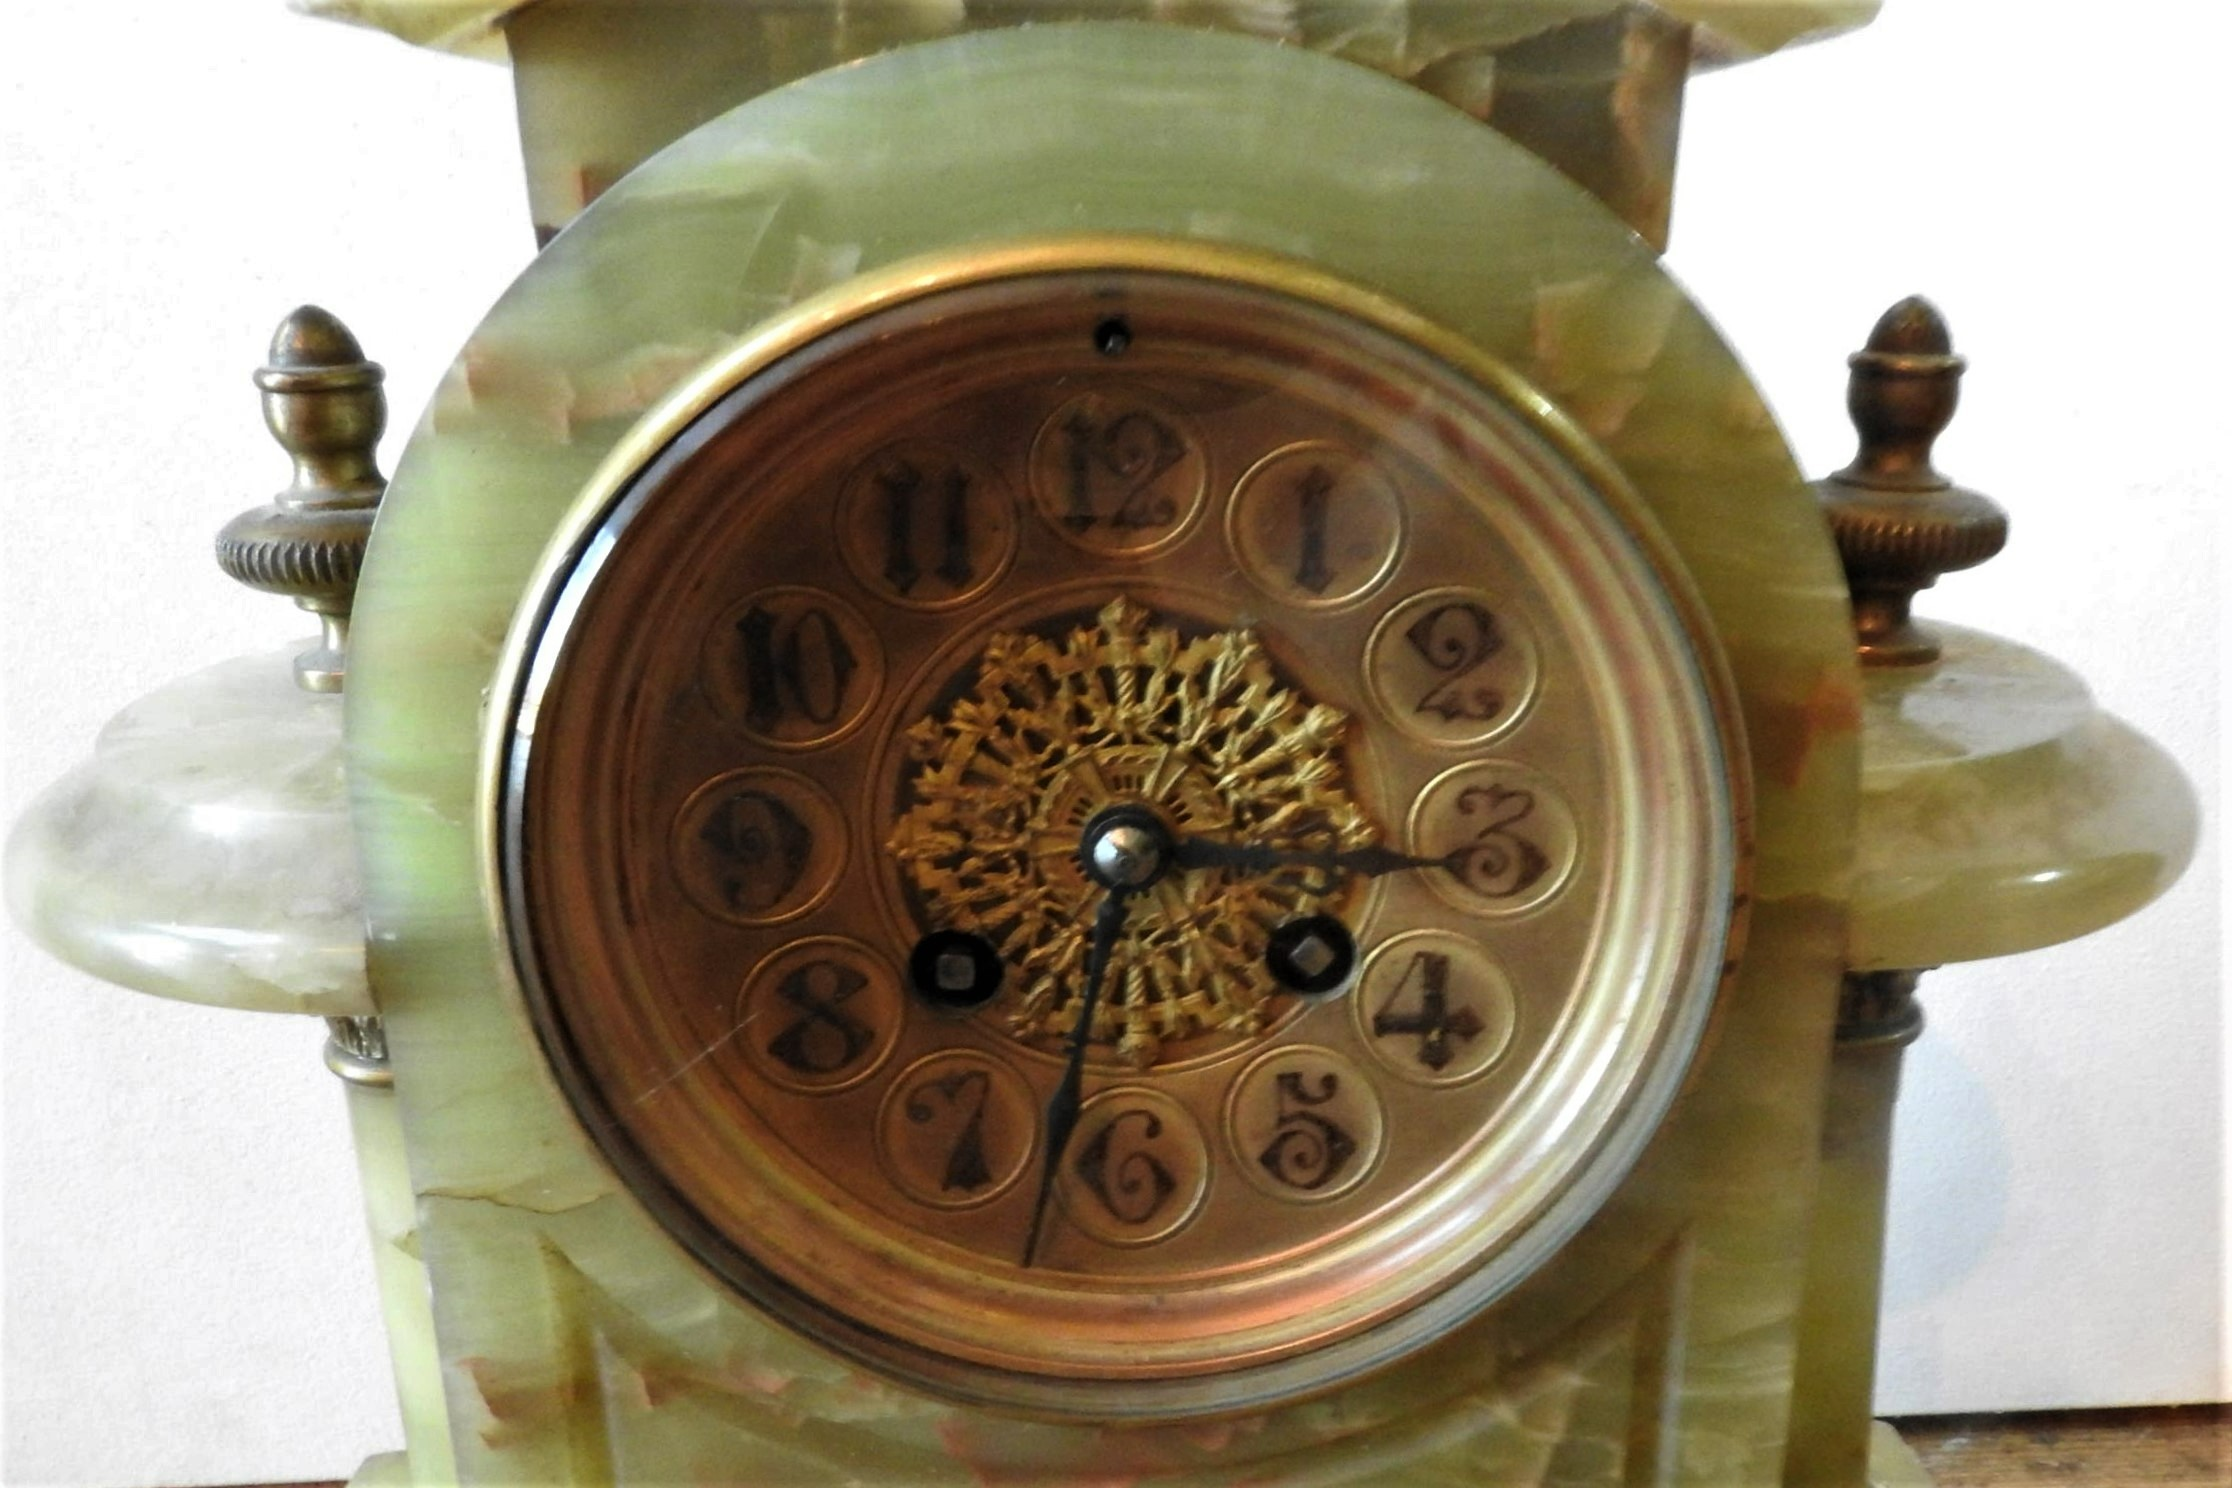 A VICTORIAN ONYX BRASS MOUNTED MANTEL CLOCK, with twin pillars on brass scroll feet, 37 x 36 cm - Image 2 of 2